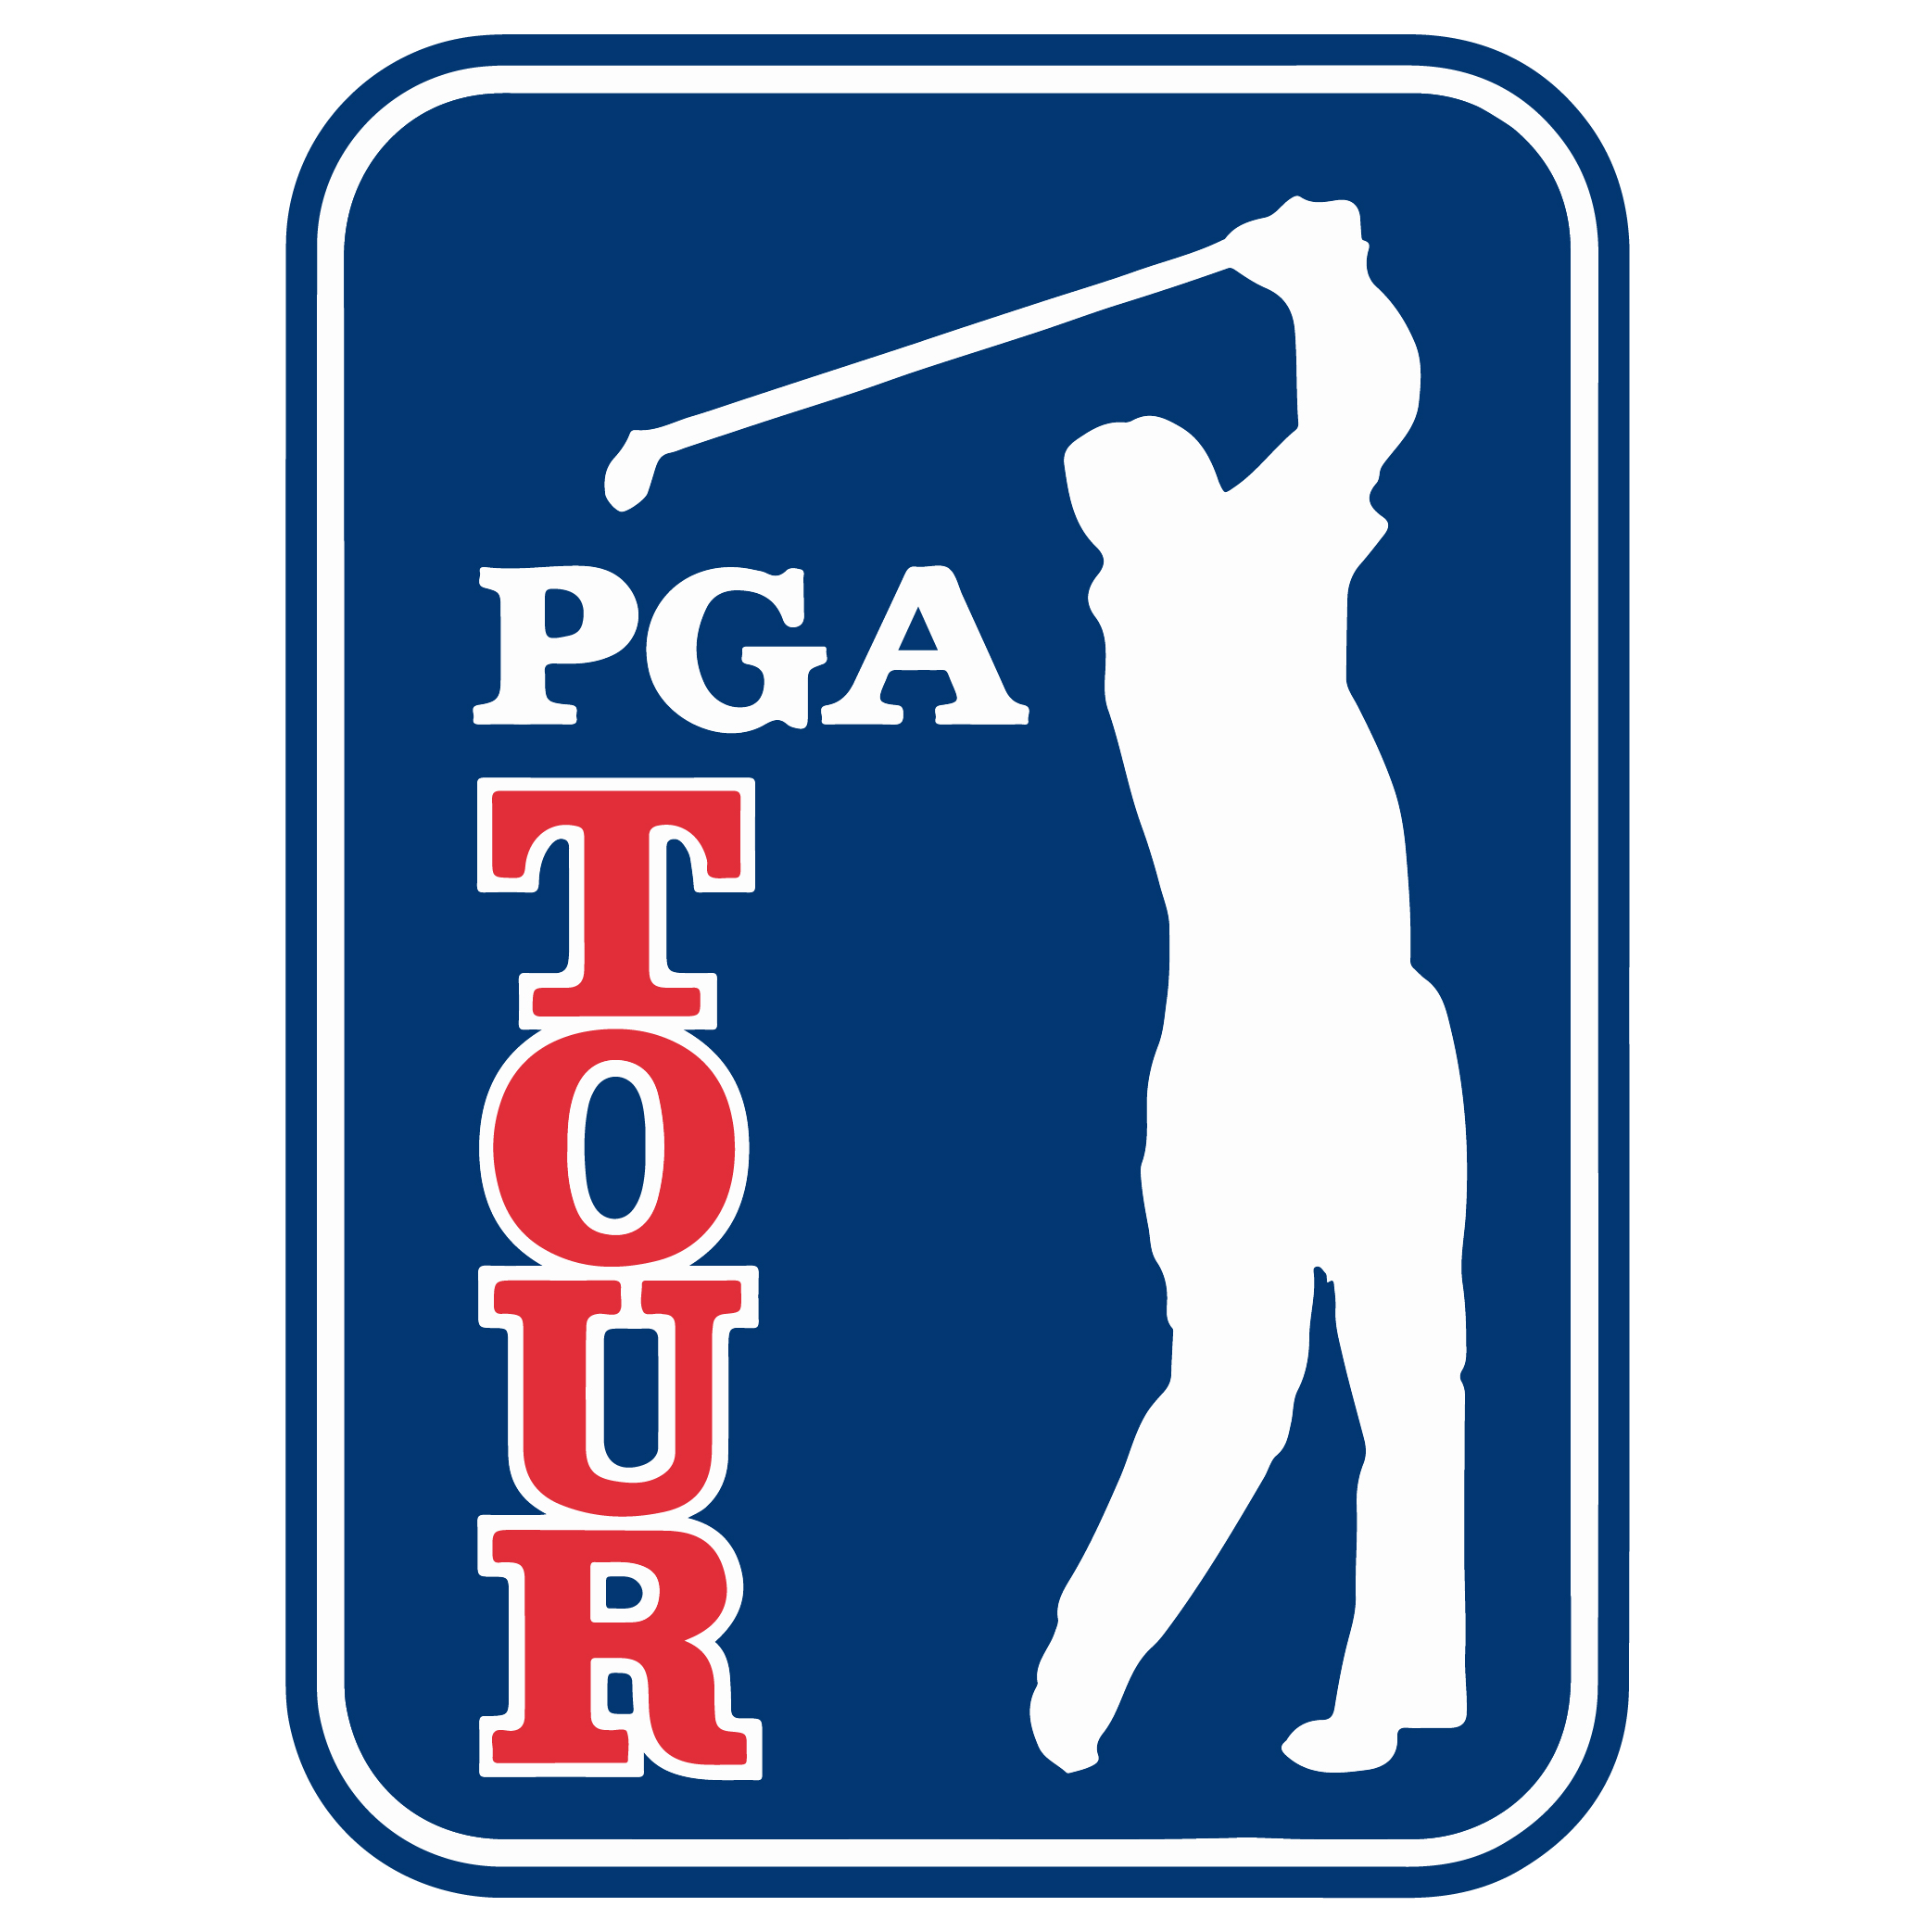 Lush Banners Customer - PGA Tour